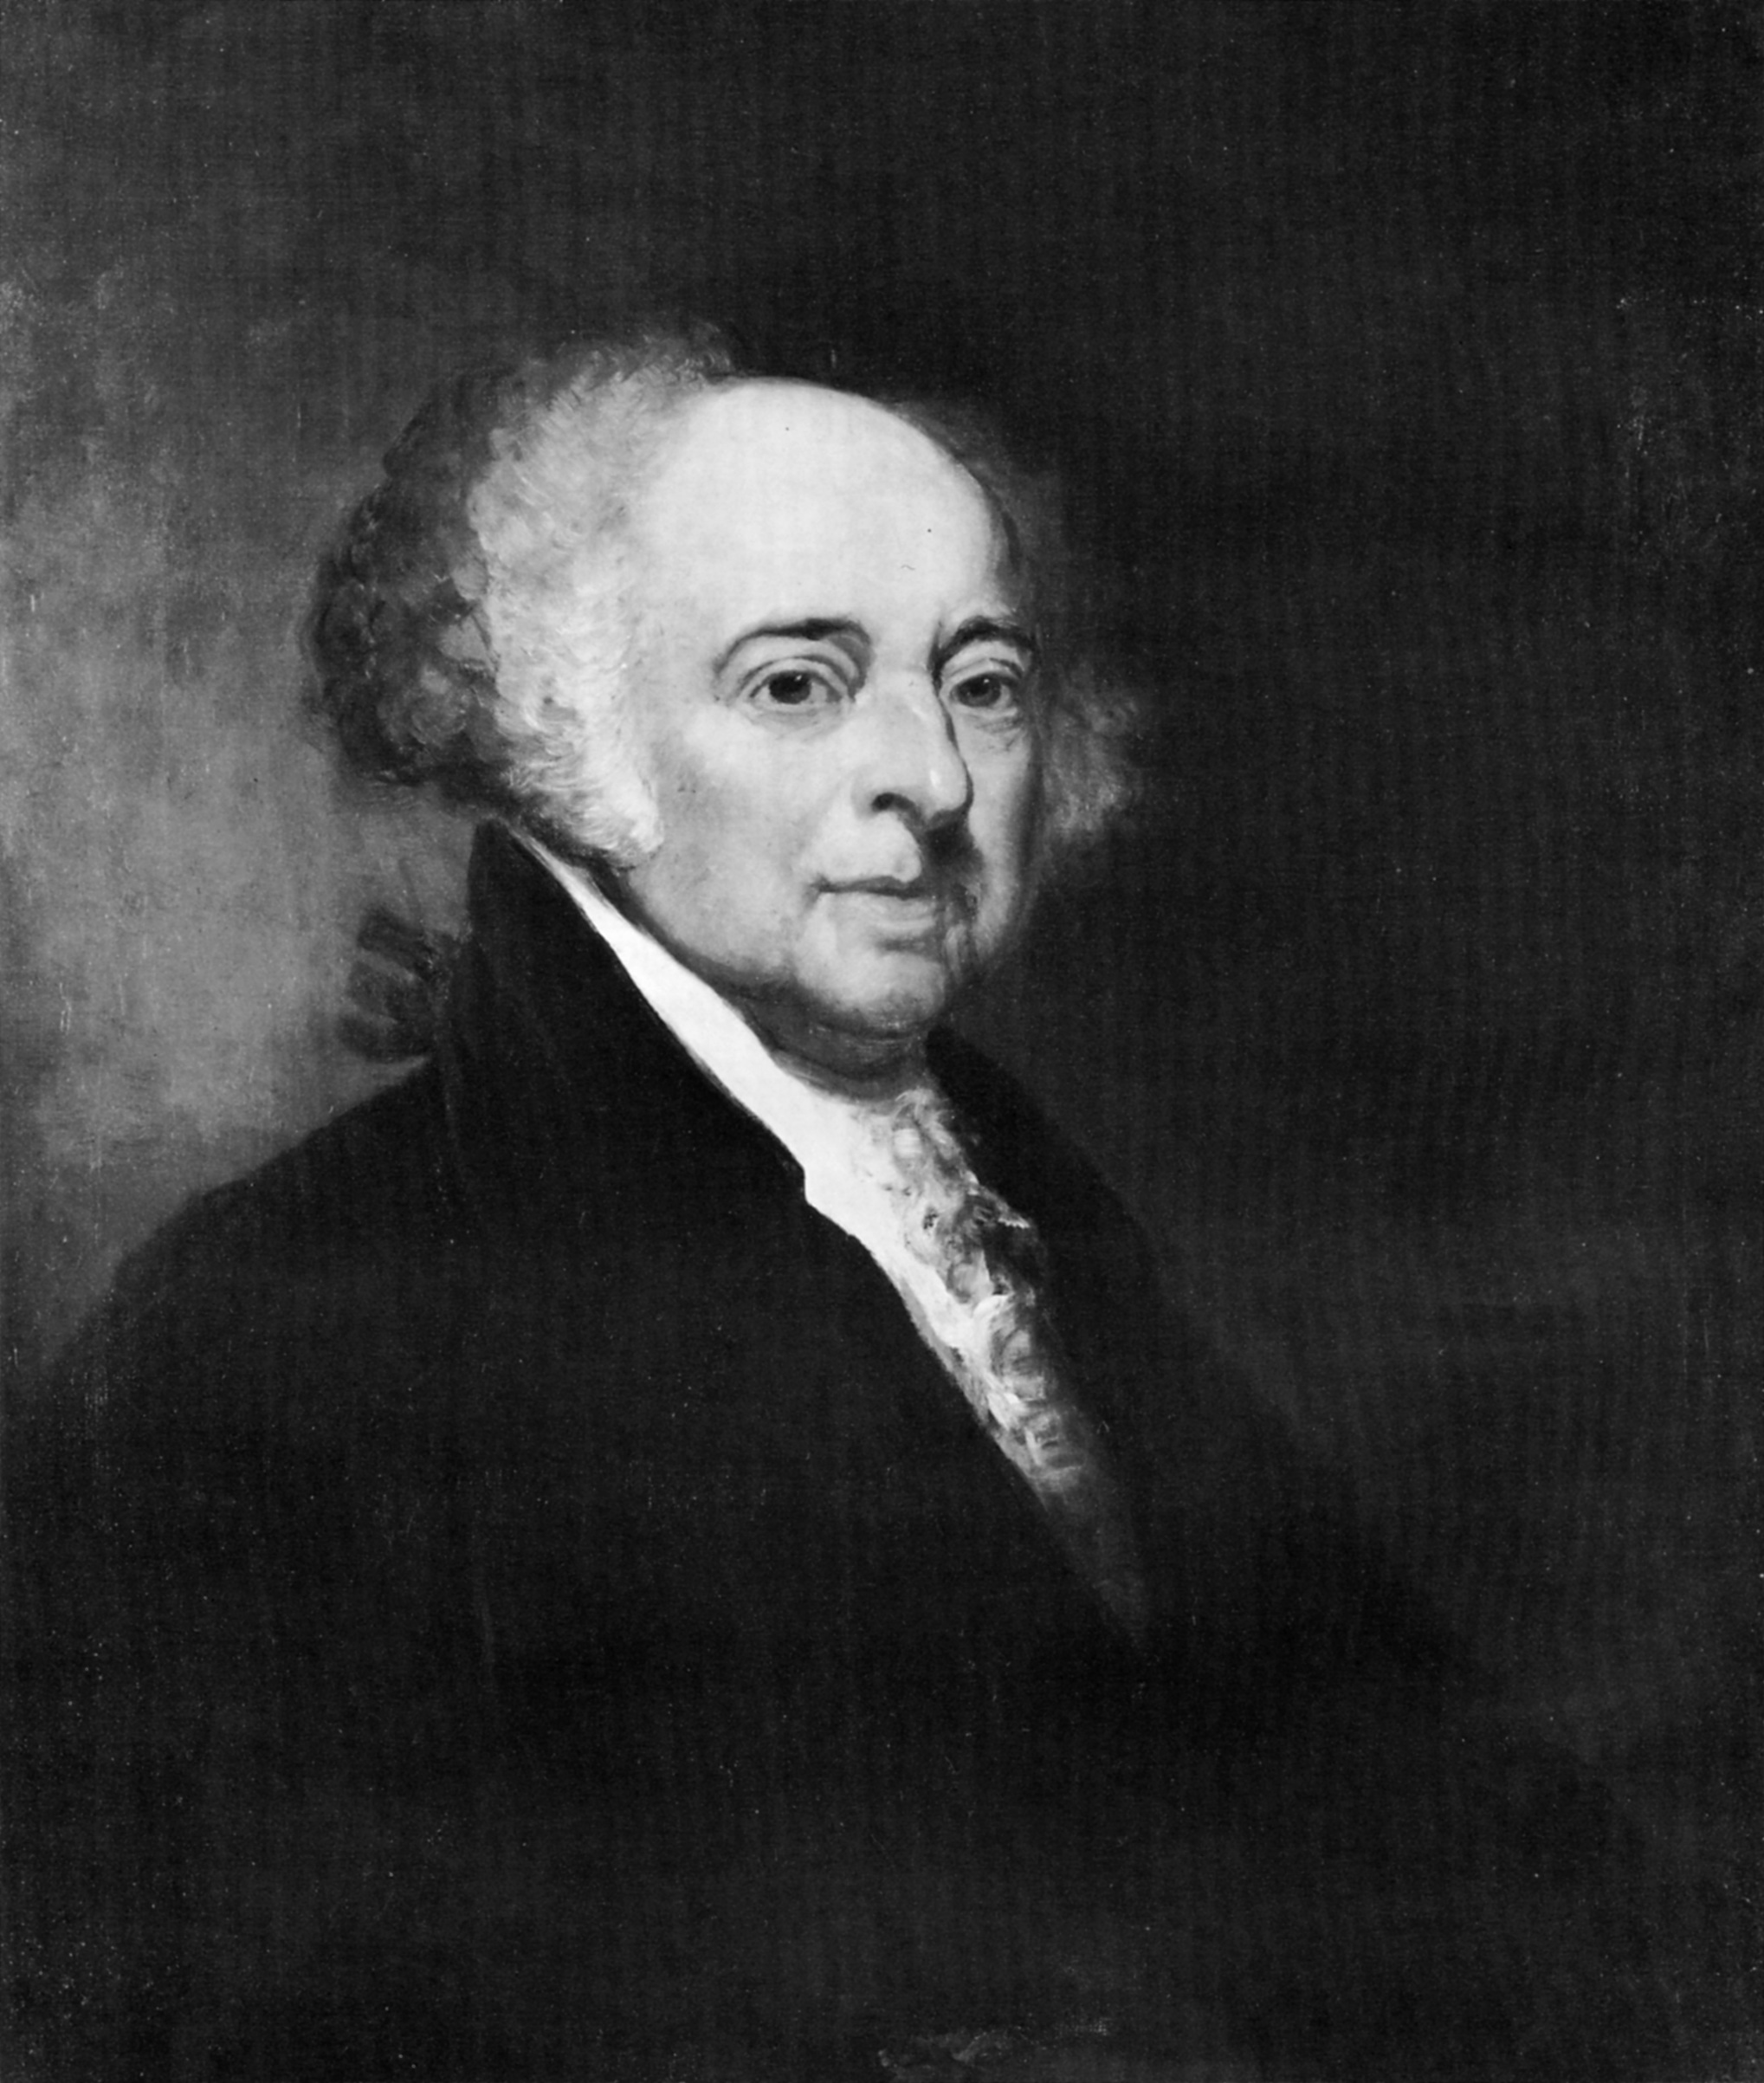 John Adams, second President of the United States, (20th century). Adams, (1735-1826) was president from 1797 until 1801. (Photo by The Print Collector/Print Collector/Getty Images)